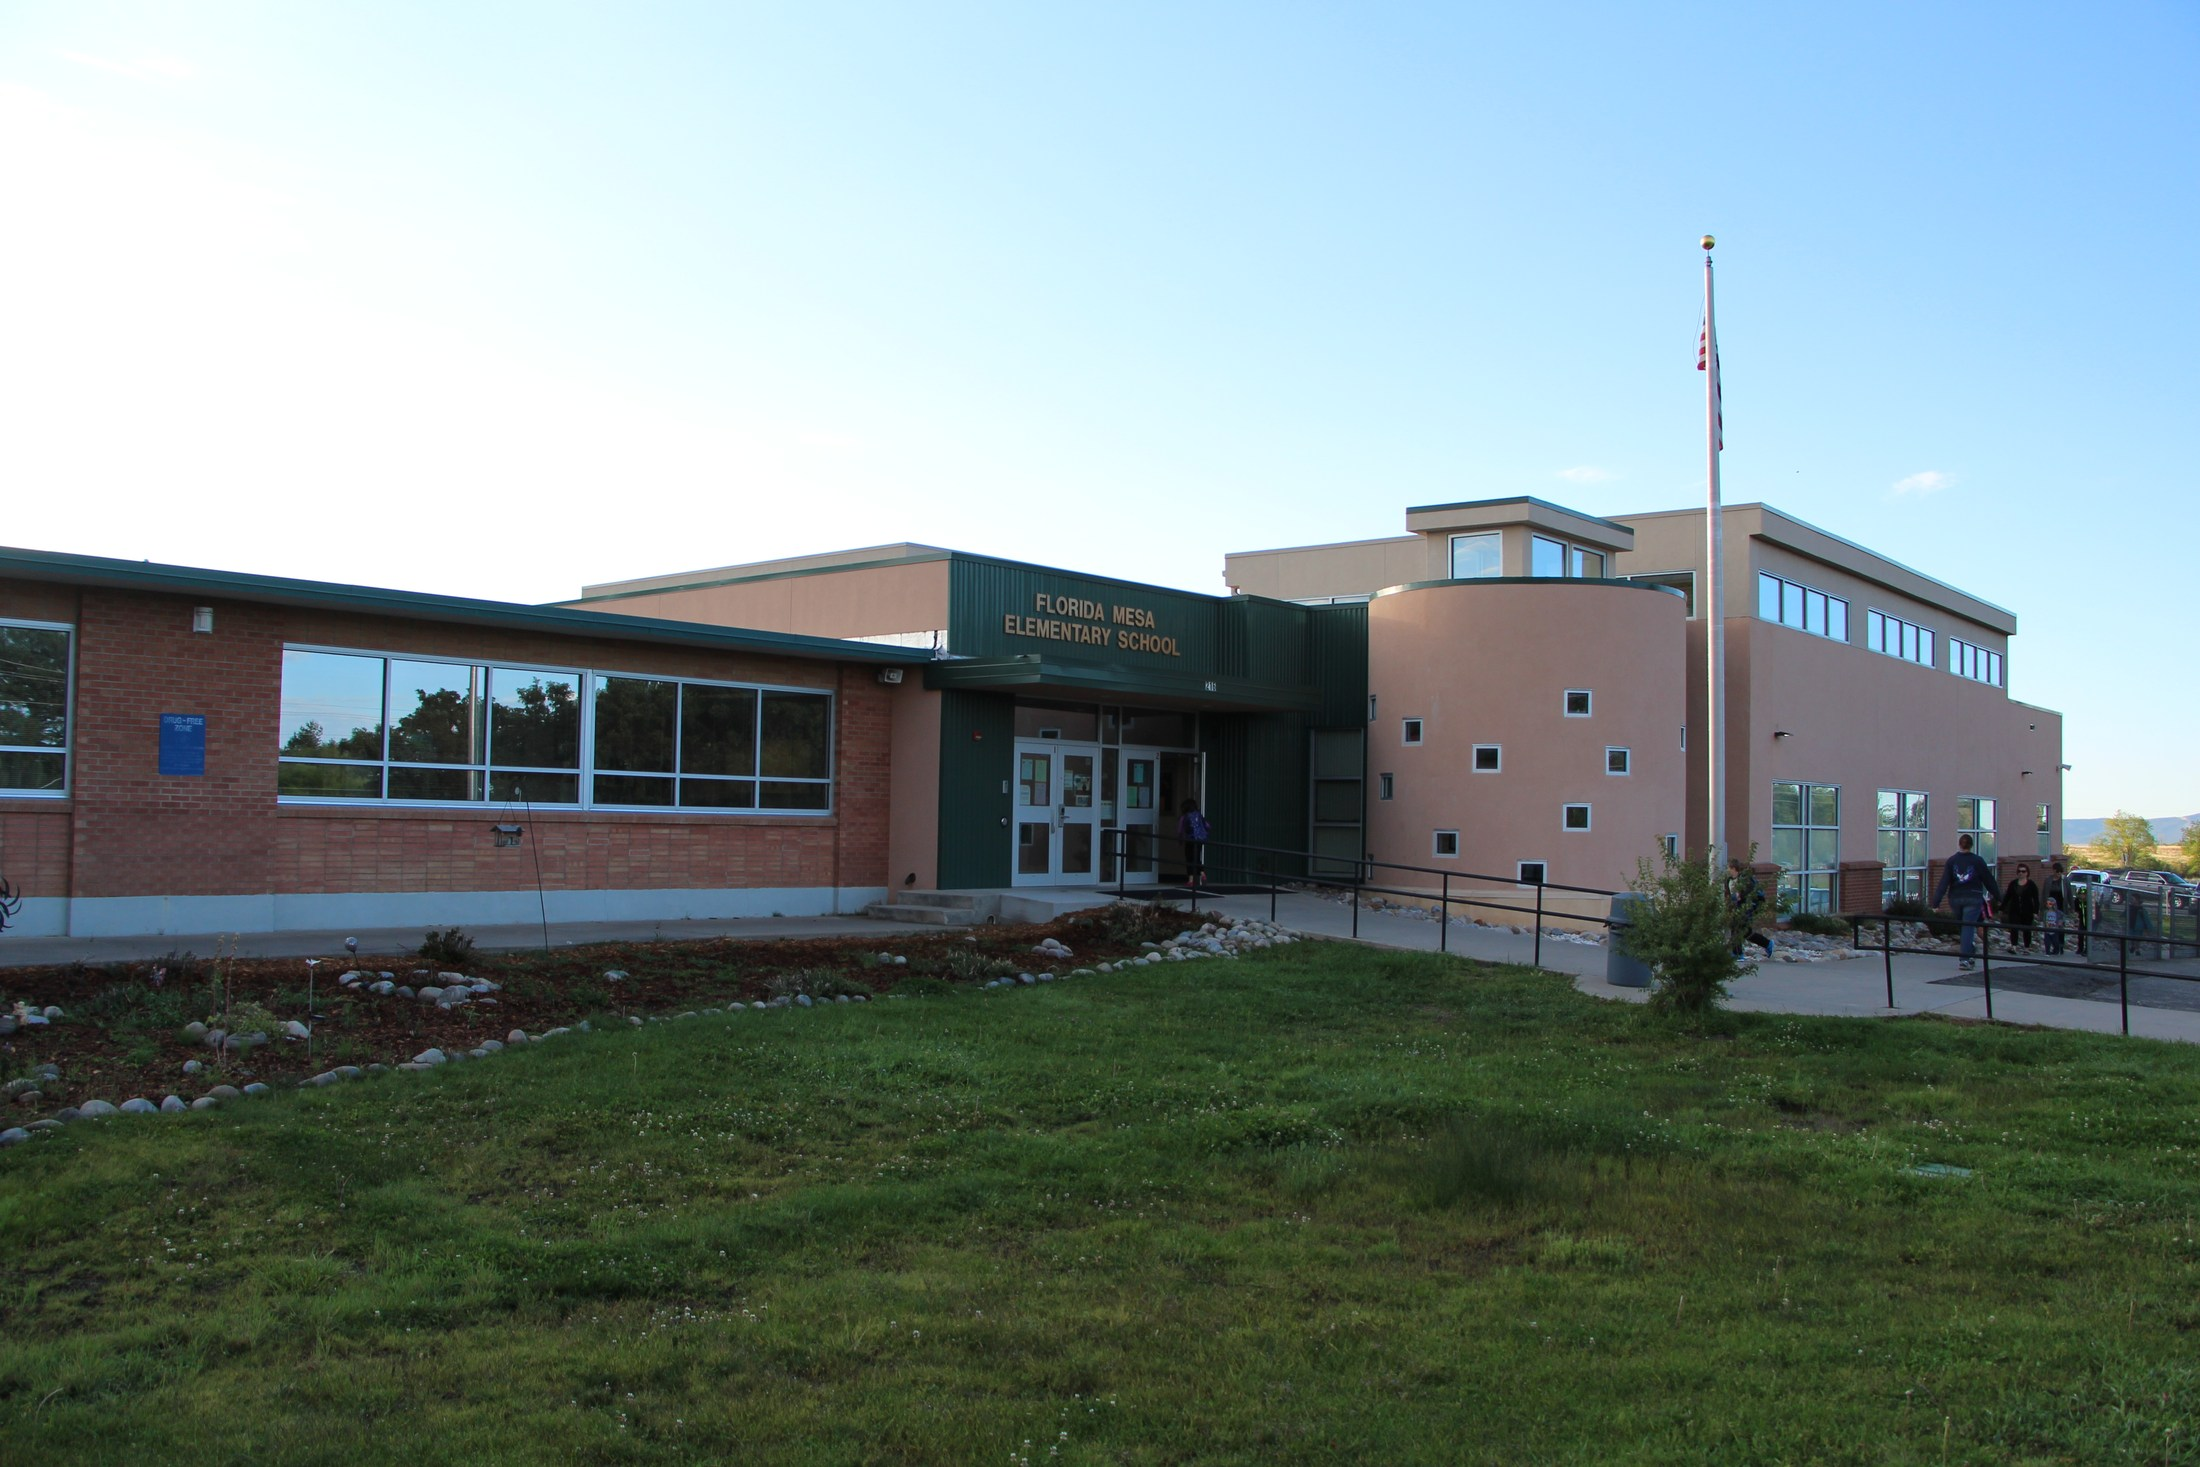 Exterior of Florida Mesa Elementary School.